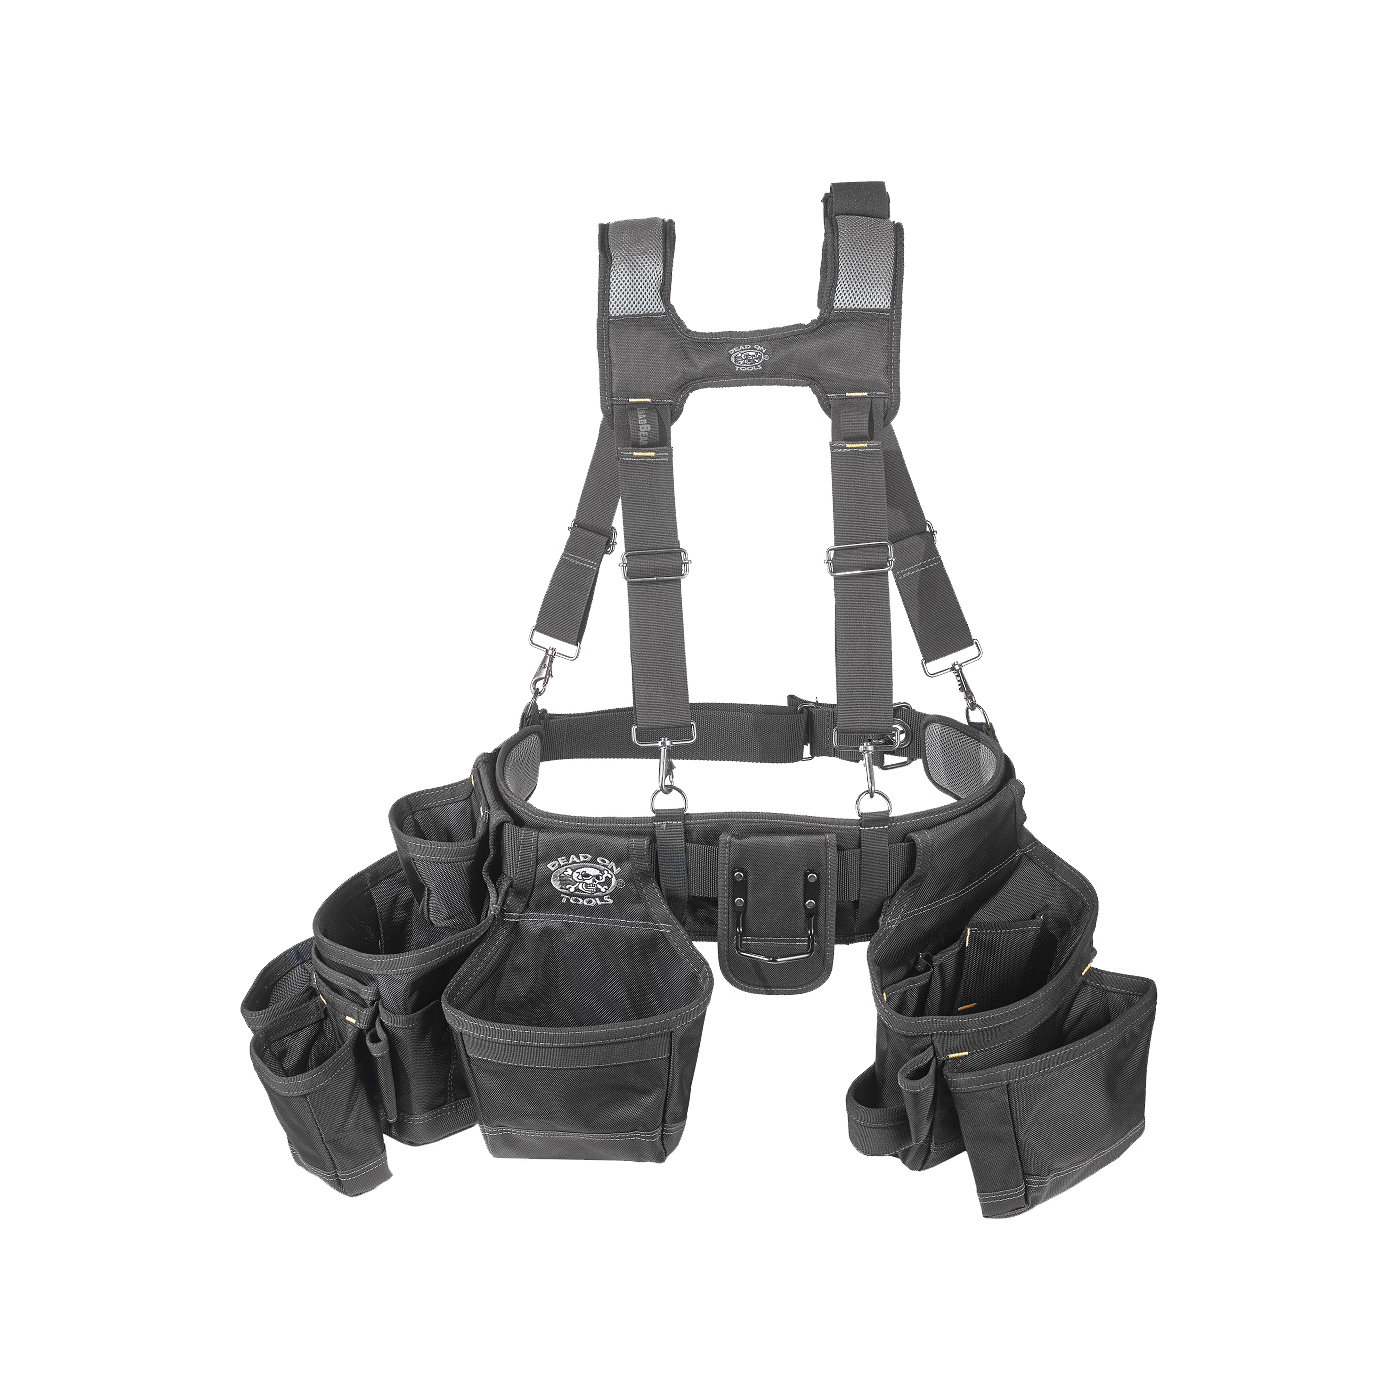 Picture of Dead On HDP369857 Framer's Suspension Rig, 52 in Waist, Poly Fabric, Black, 19 -Pocket